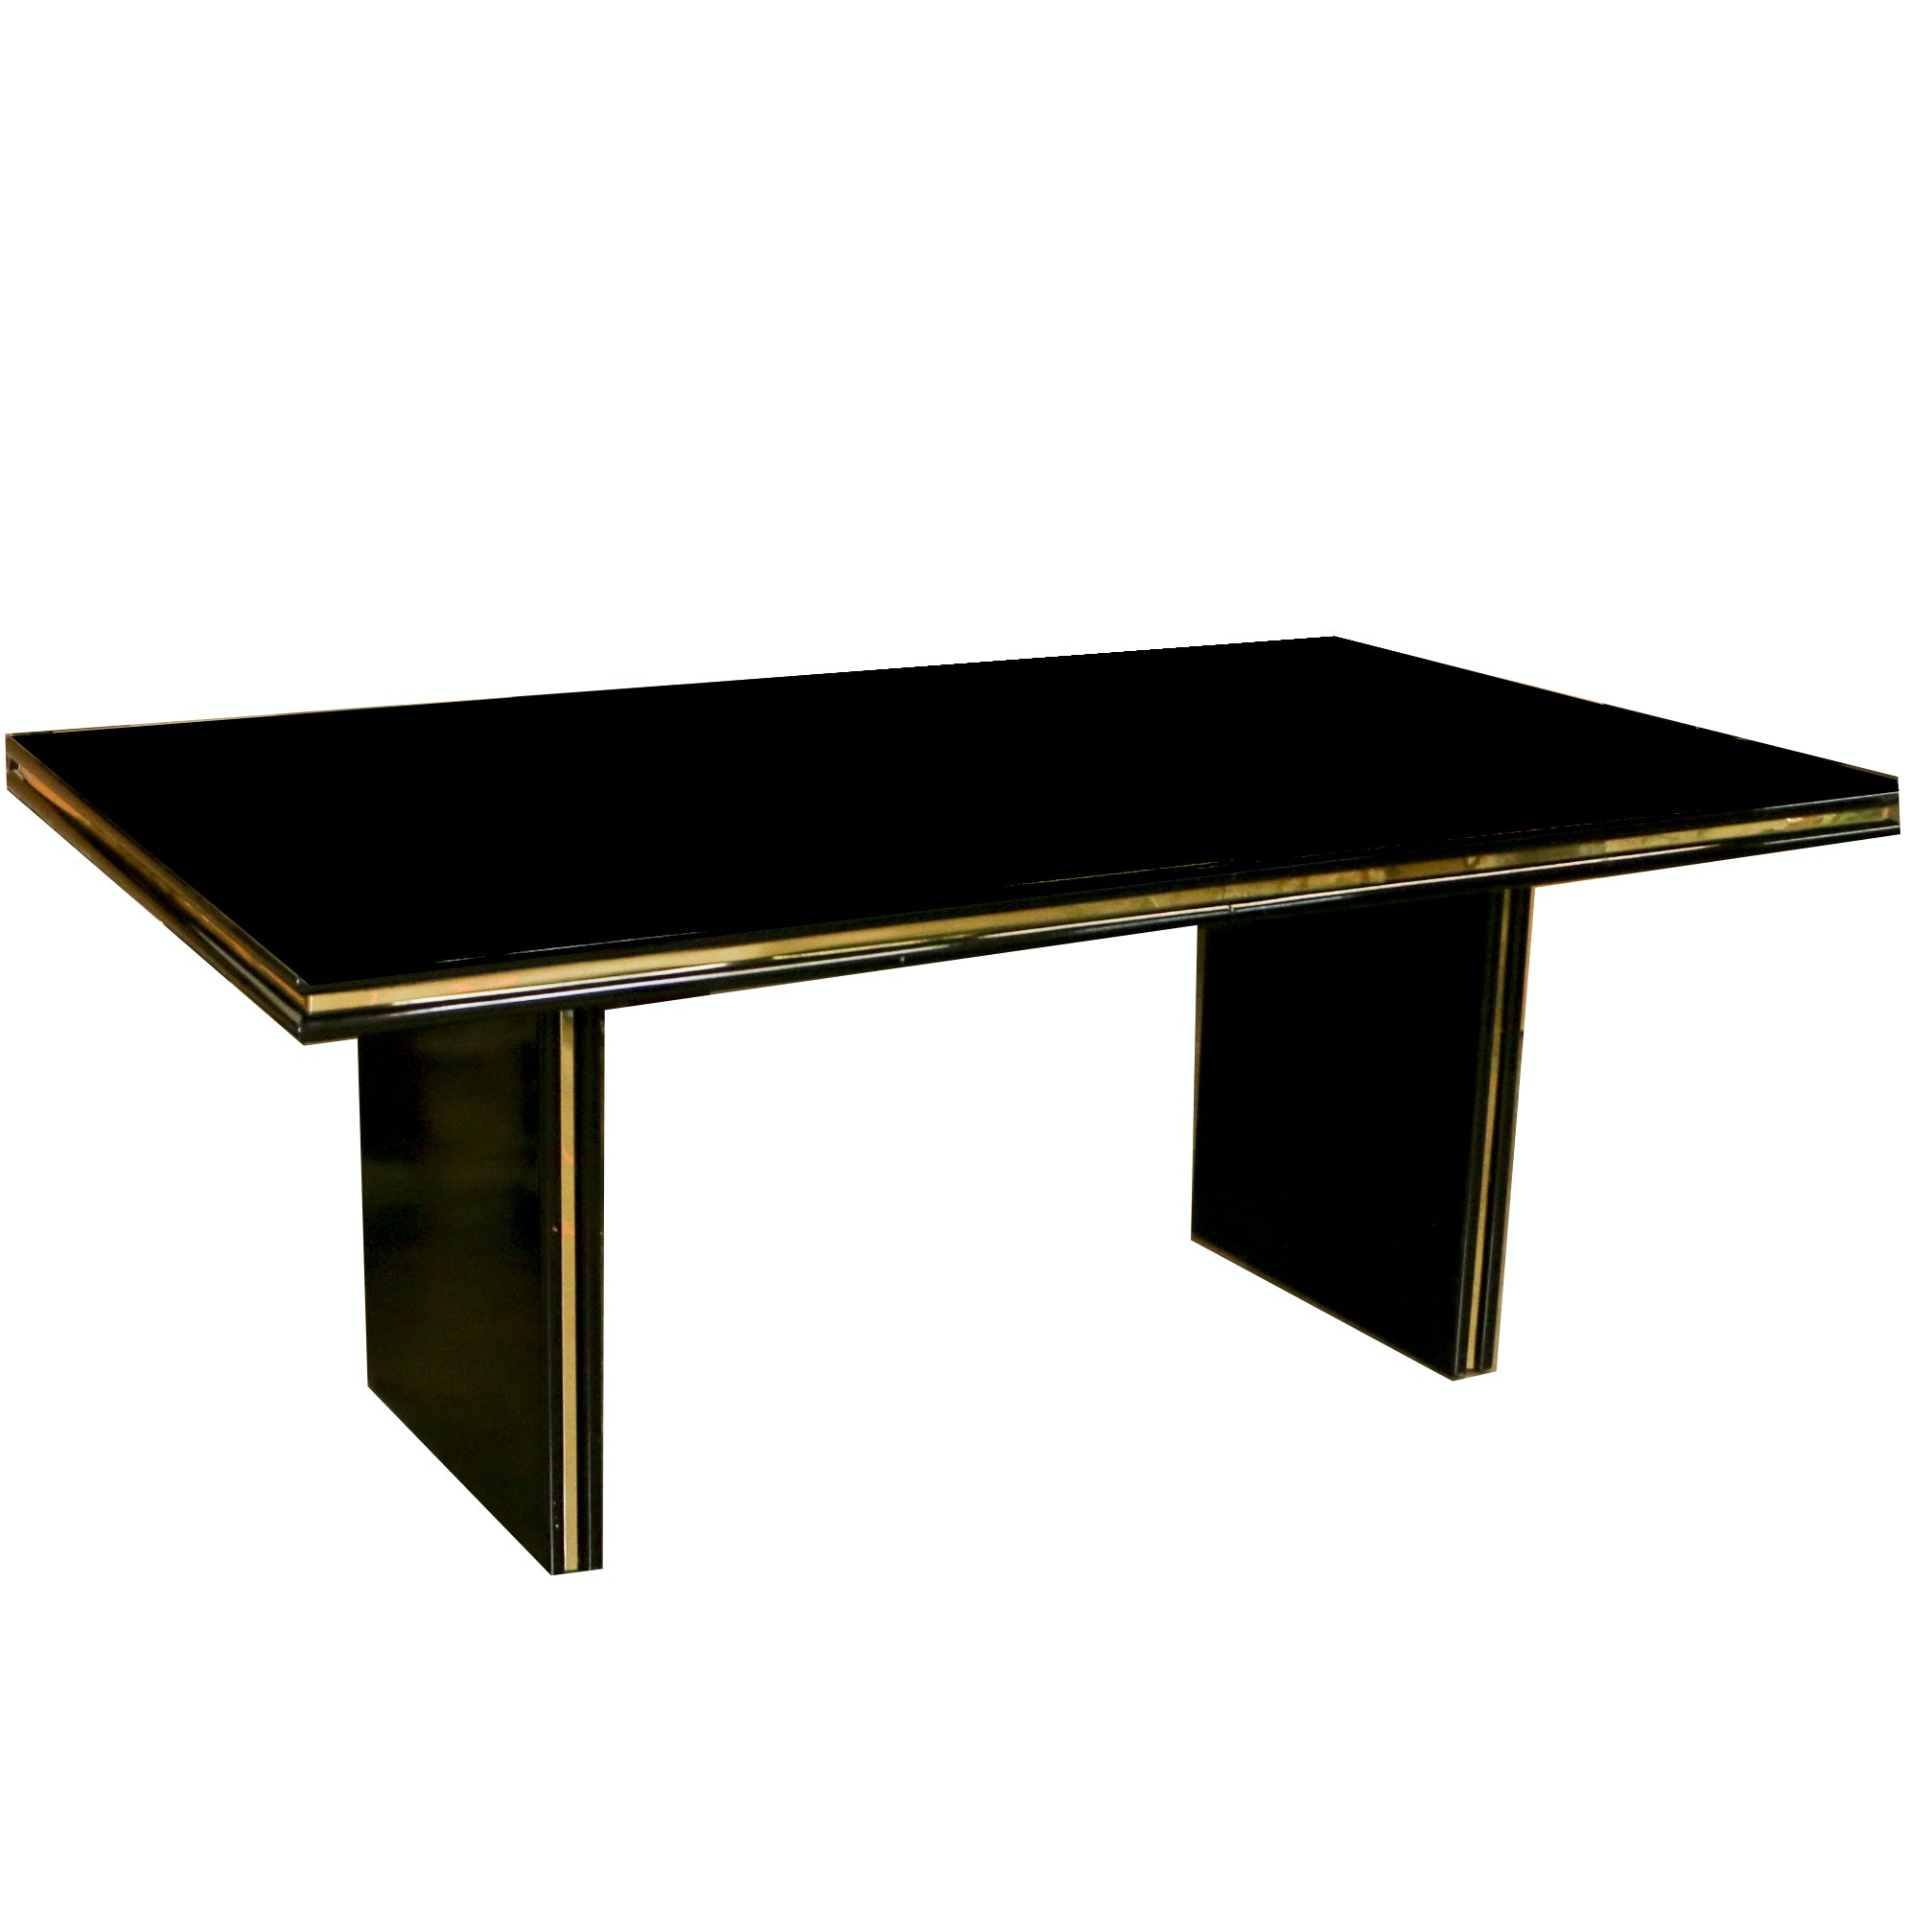 Deco Revival Style Black Lacquered Wood Dining Table, Late 20th Century